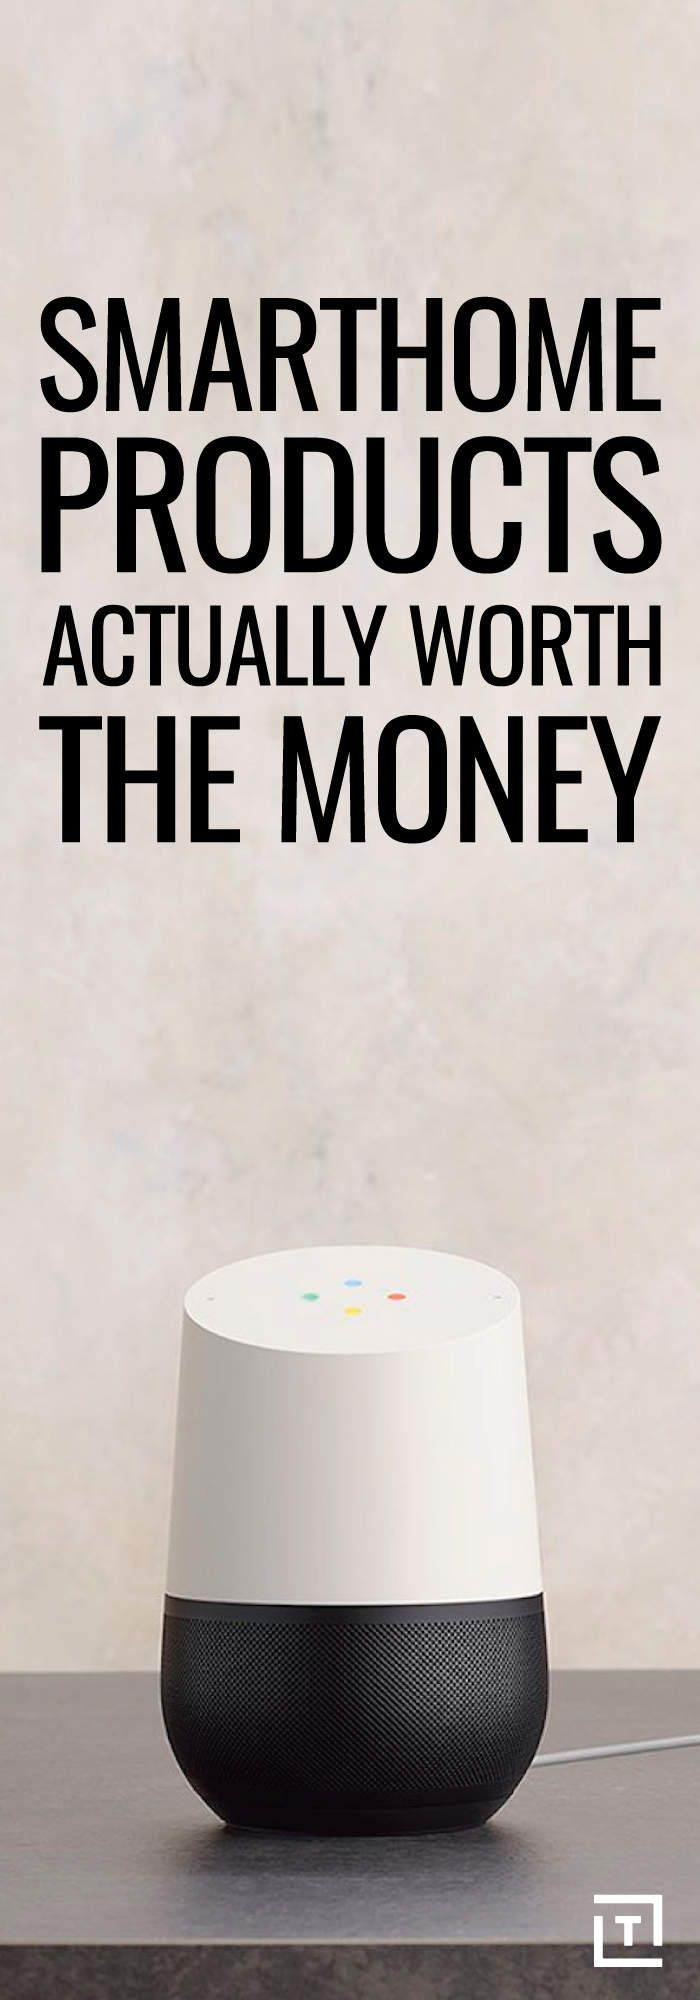 SMART HOME PRODUCTS THAT ARE ACTUALLY WORTH THE MONEY